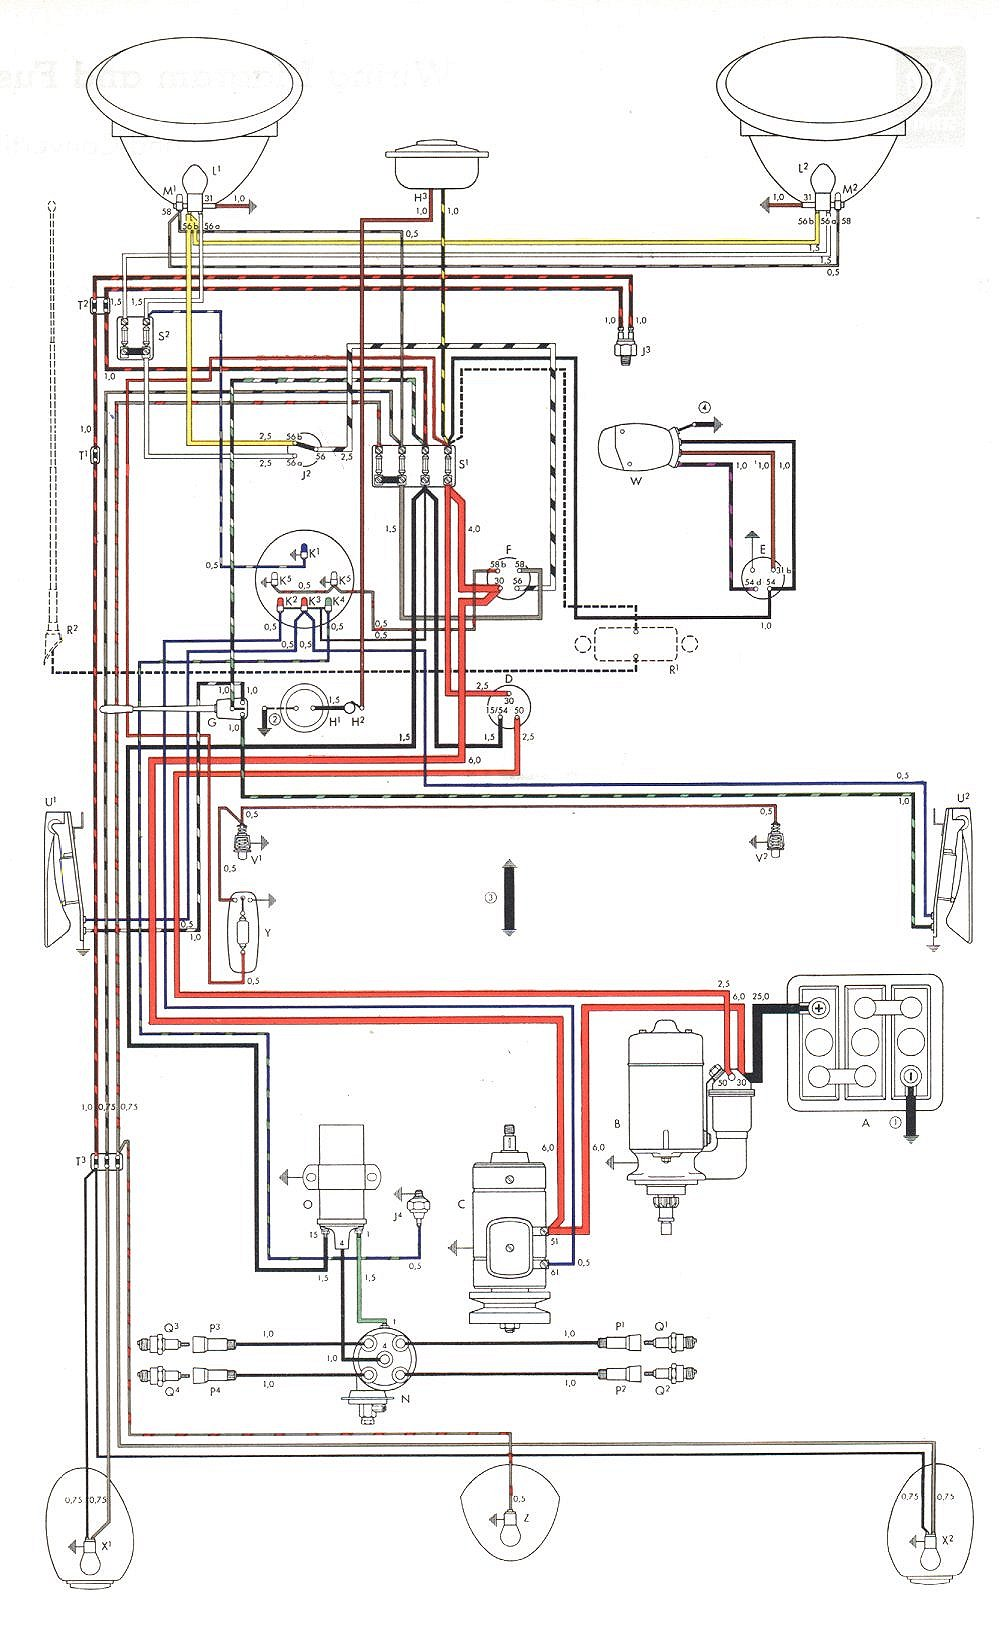 bug 58+59 euro vw bug wiring 1969 vw starter wiring diagram \u2022 wiring diagrams j 2000 vw beetle headlight wiring harness at webbmarketing.co